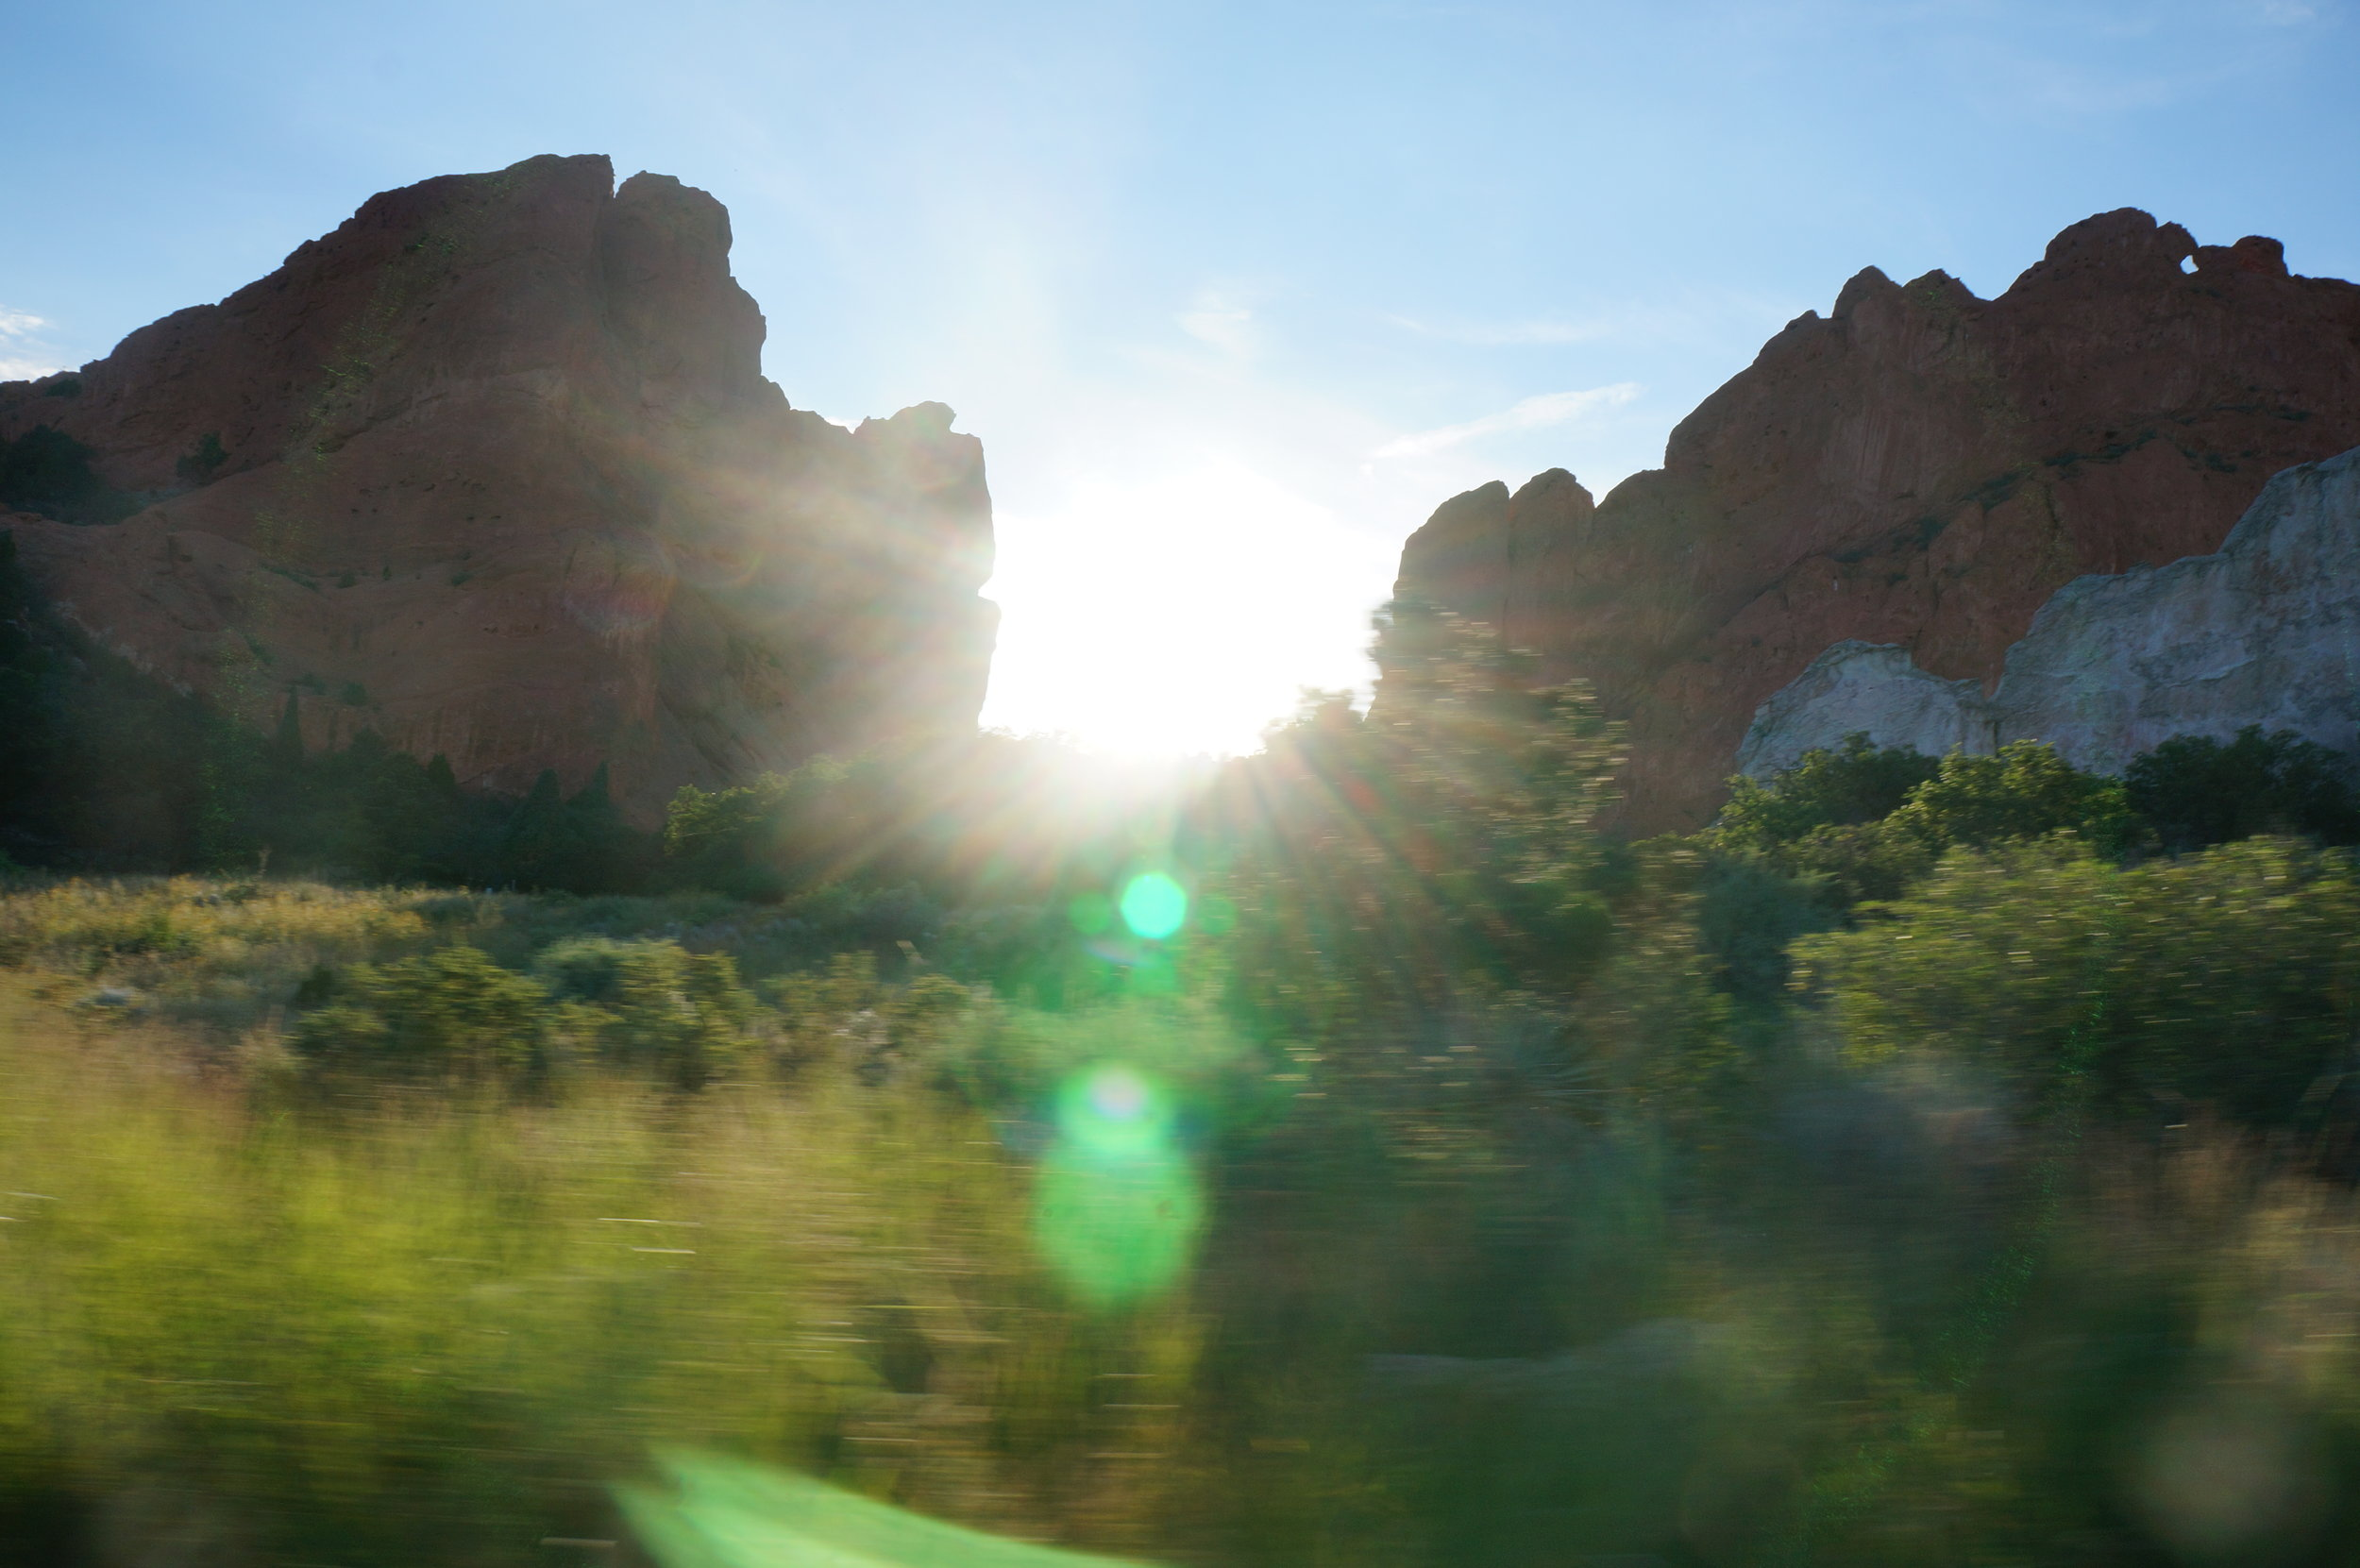 Copy of Garden of the Gods | Colorado Springs, CO | 38°50′26″N 105°02′39″W